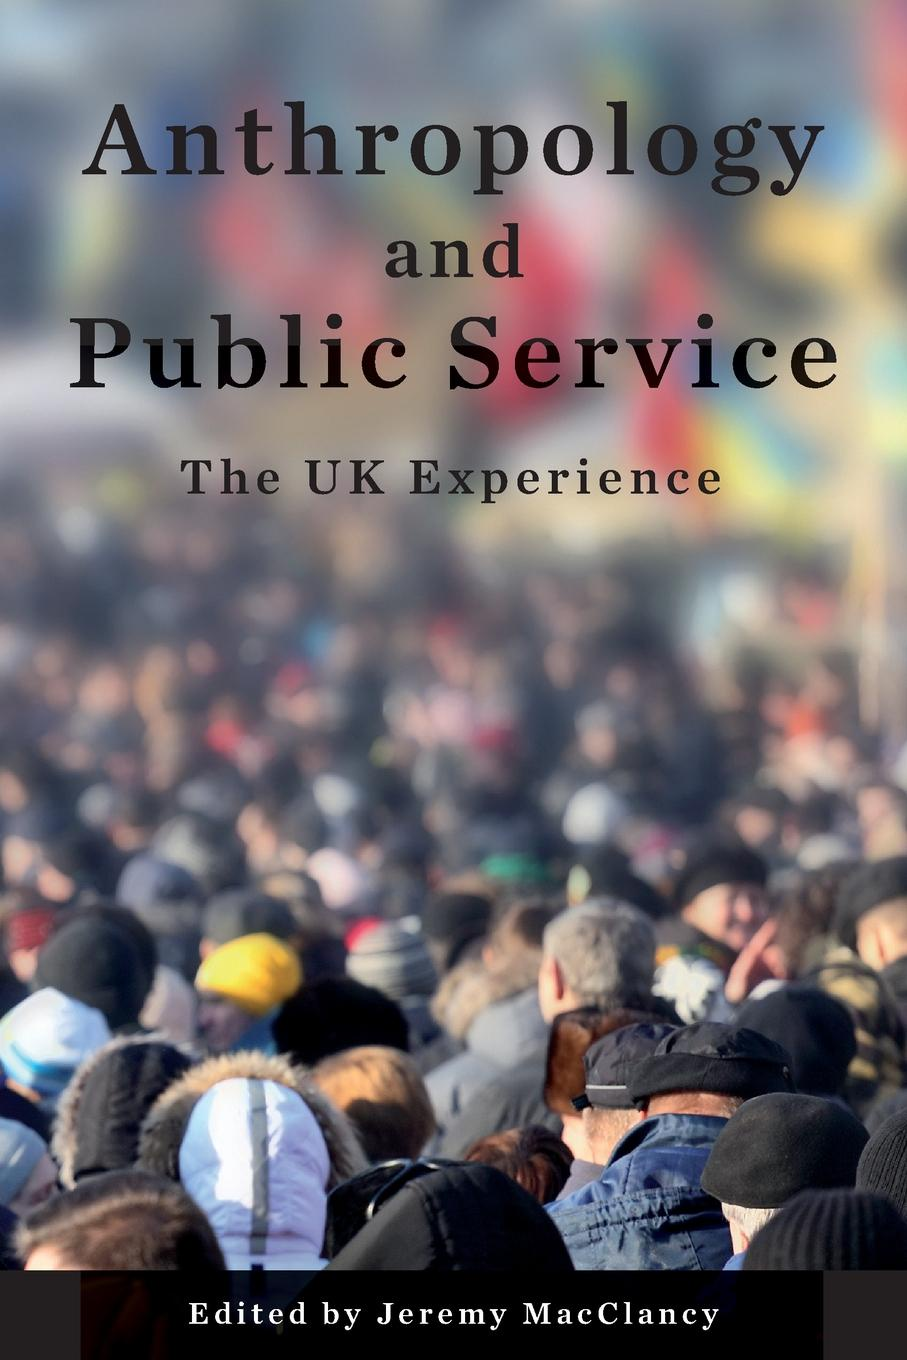 Anthropology and Public Service. The UK Experience